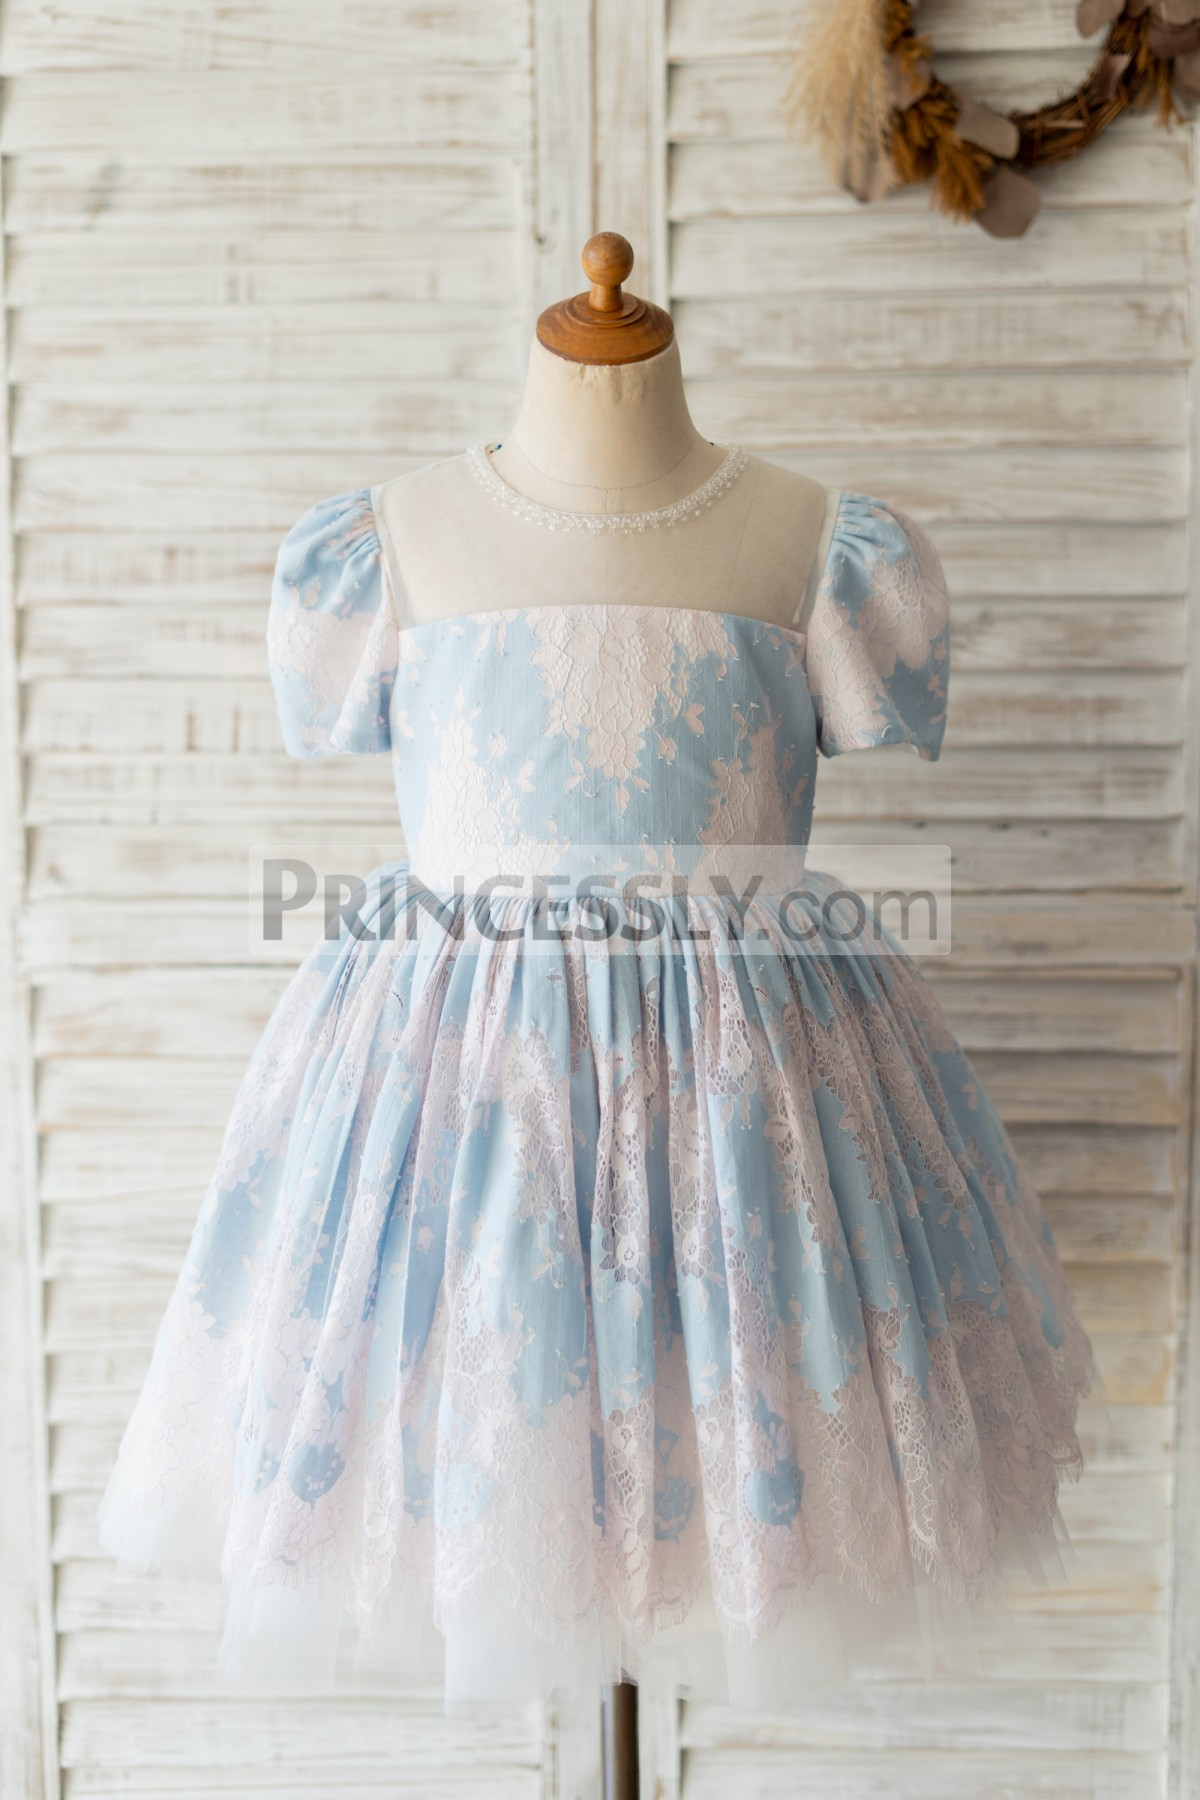 Princessly.com-K1004132-Blue Lace Short Sleeves Wedding Flower Girl Dress-31